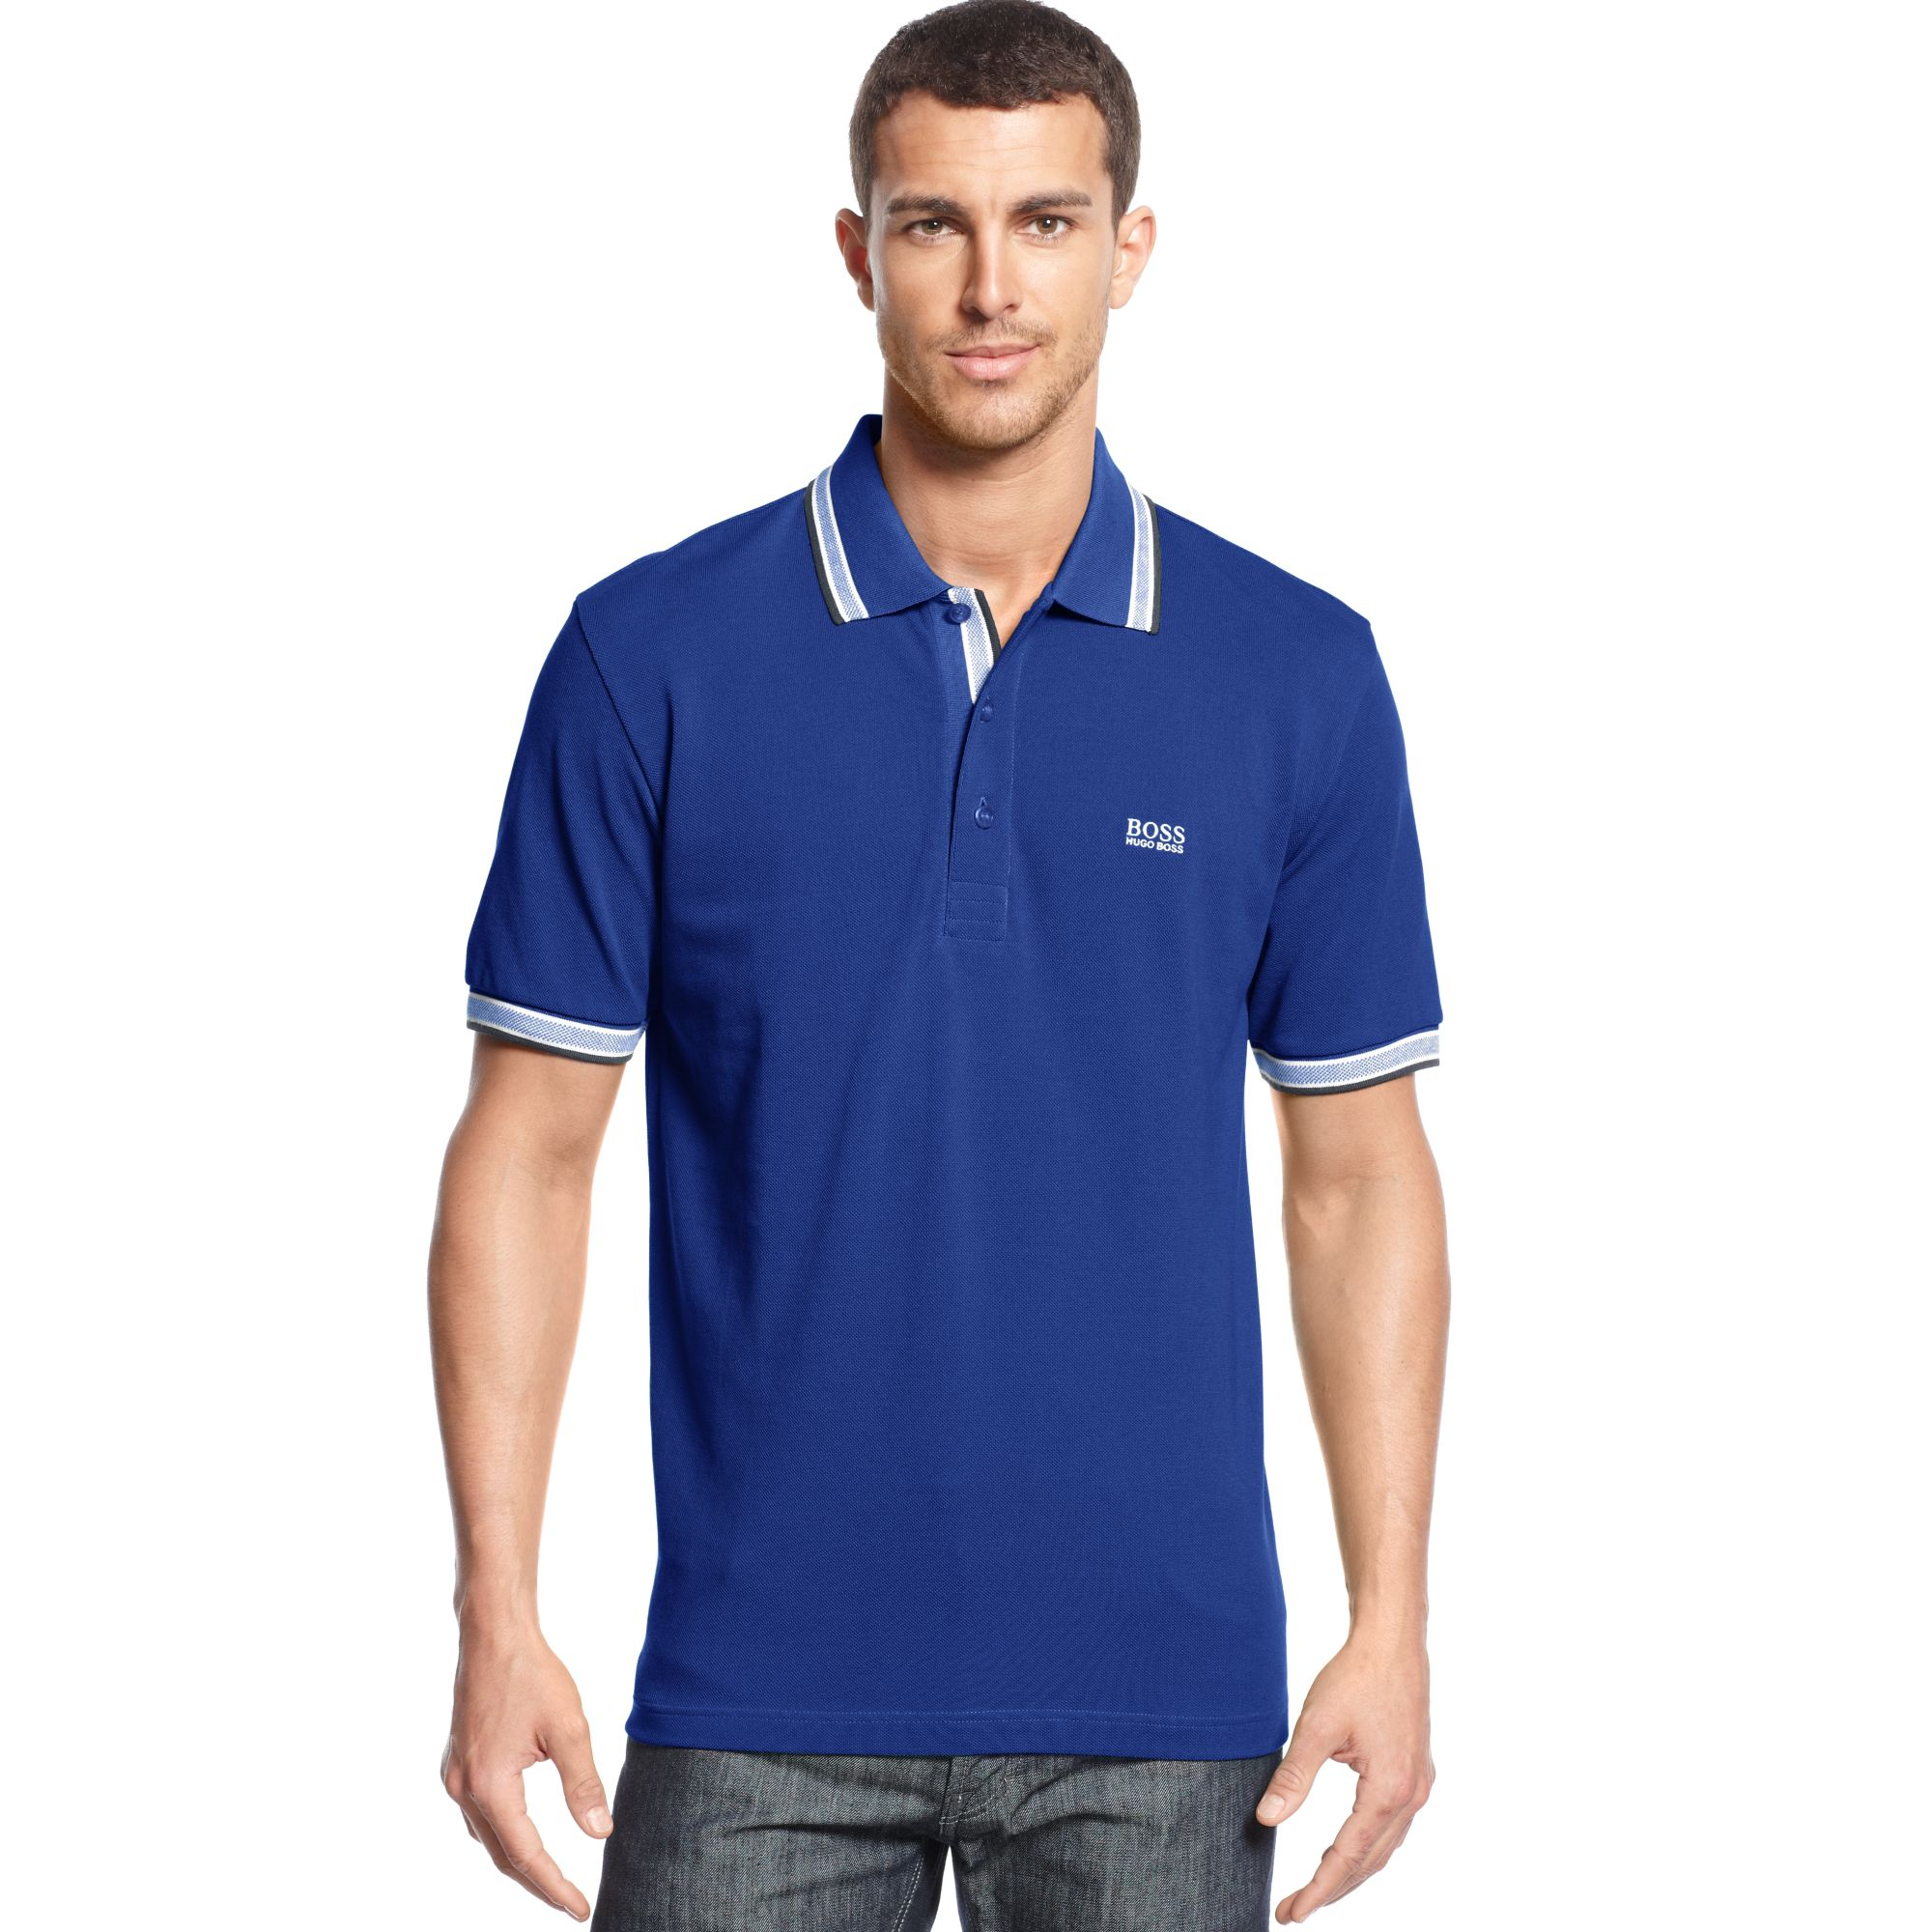 hugo boss boss green paddy polo shirt in blue for men true blue lyst. Black Bedroom Furniture Sets. Home Design Ideas